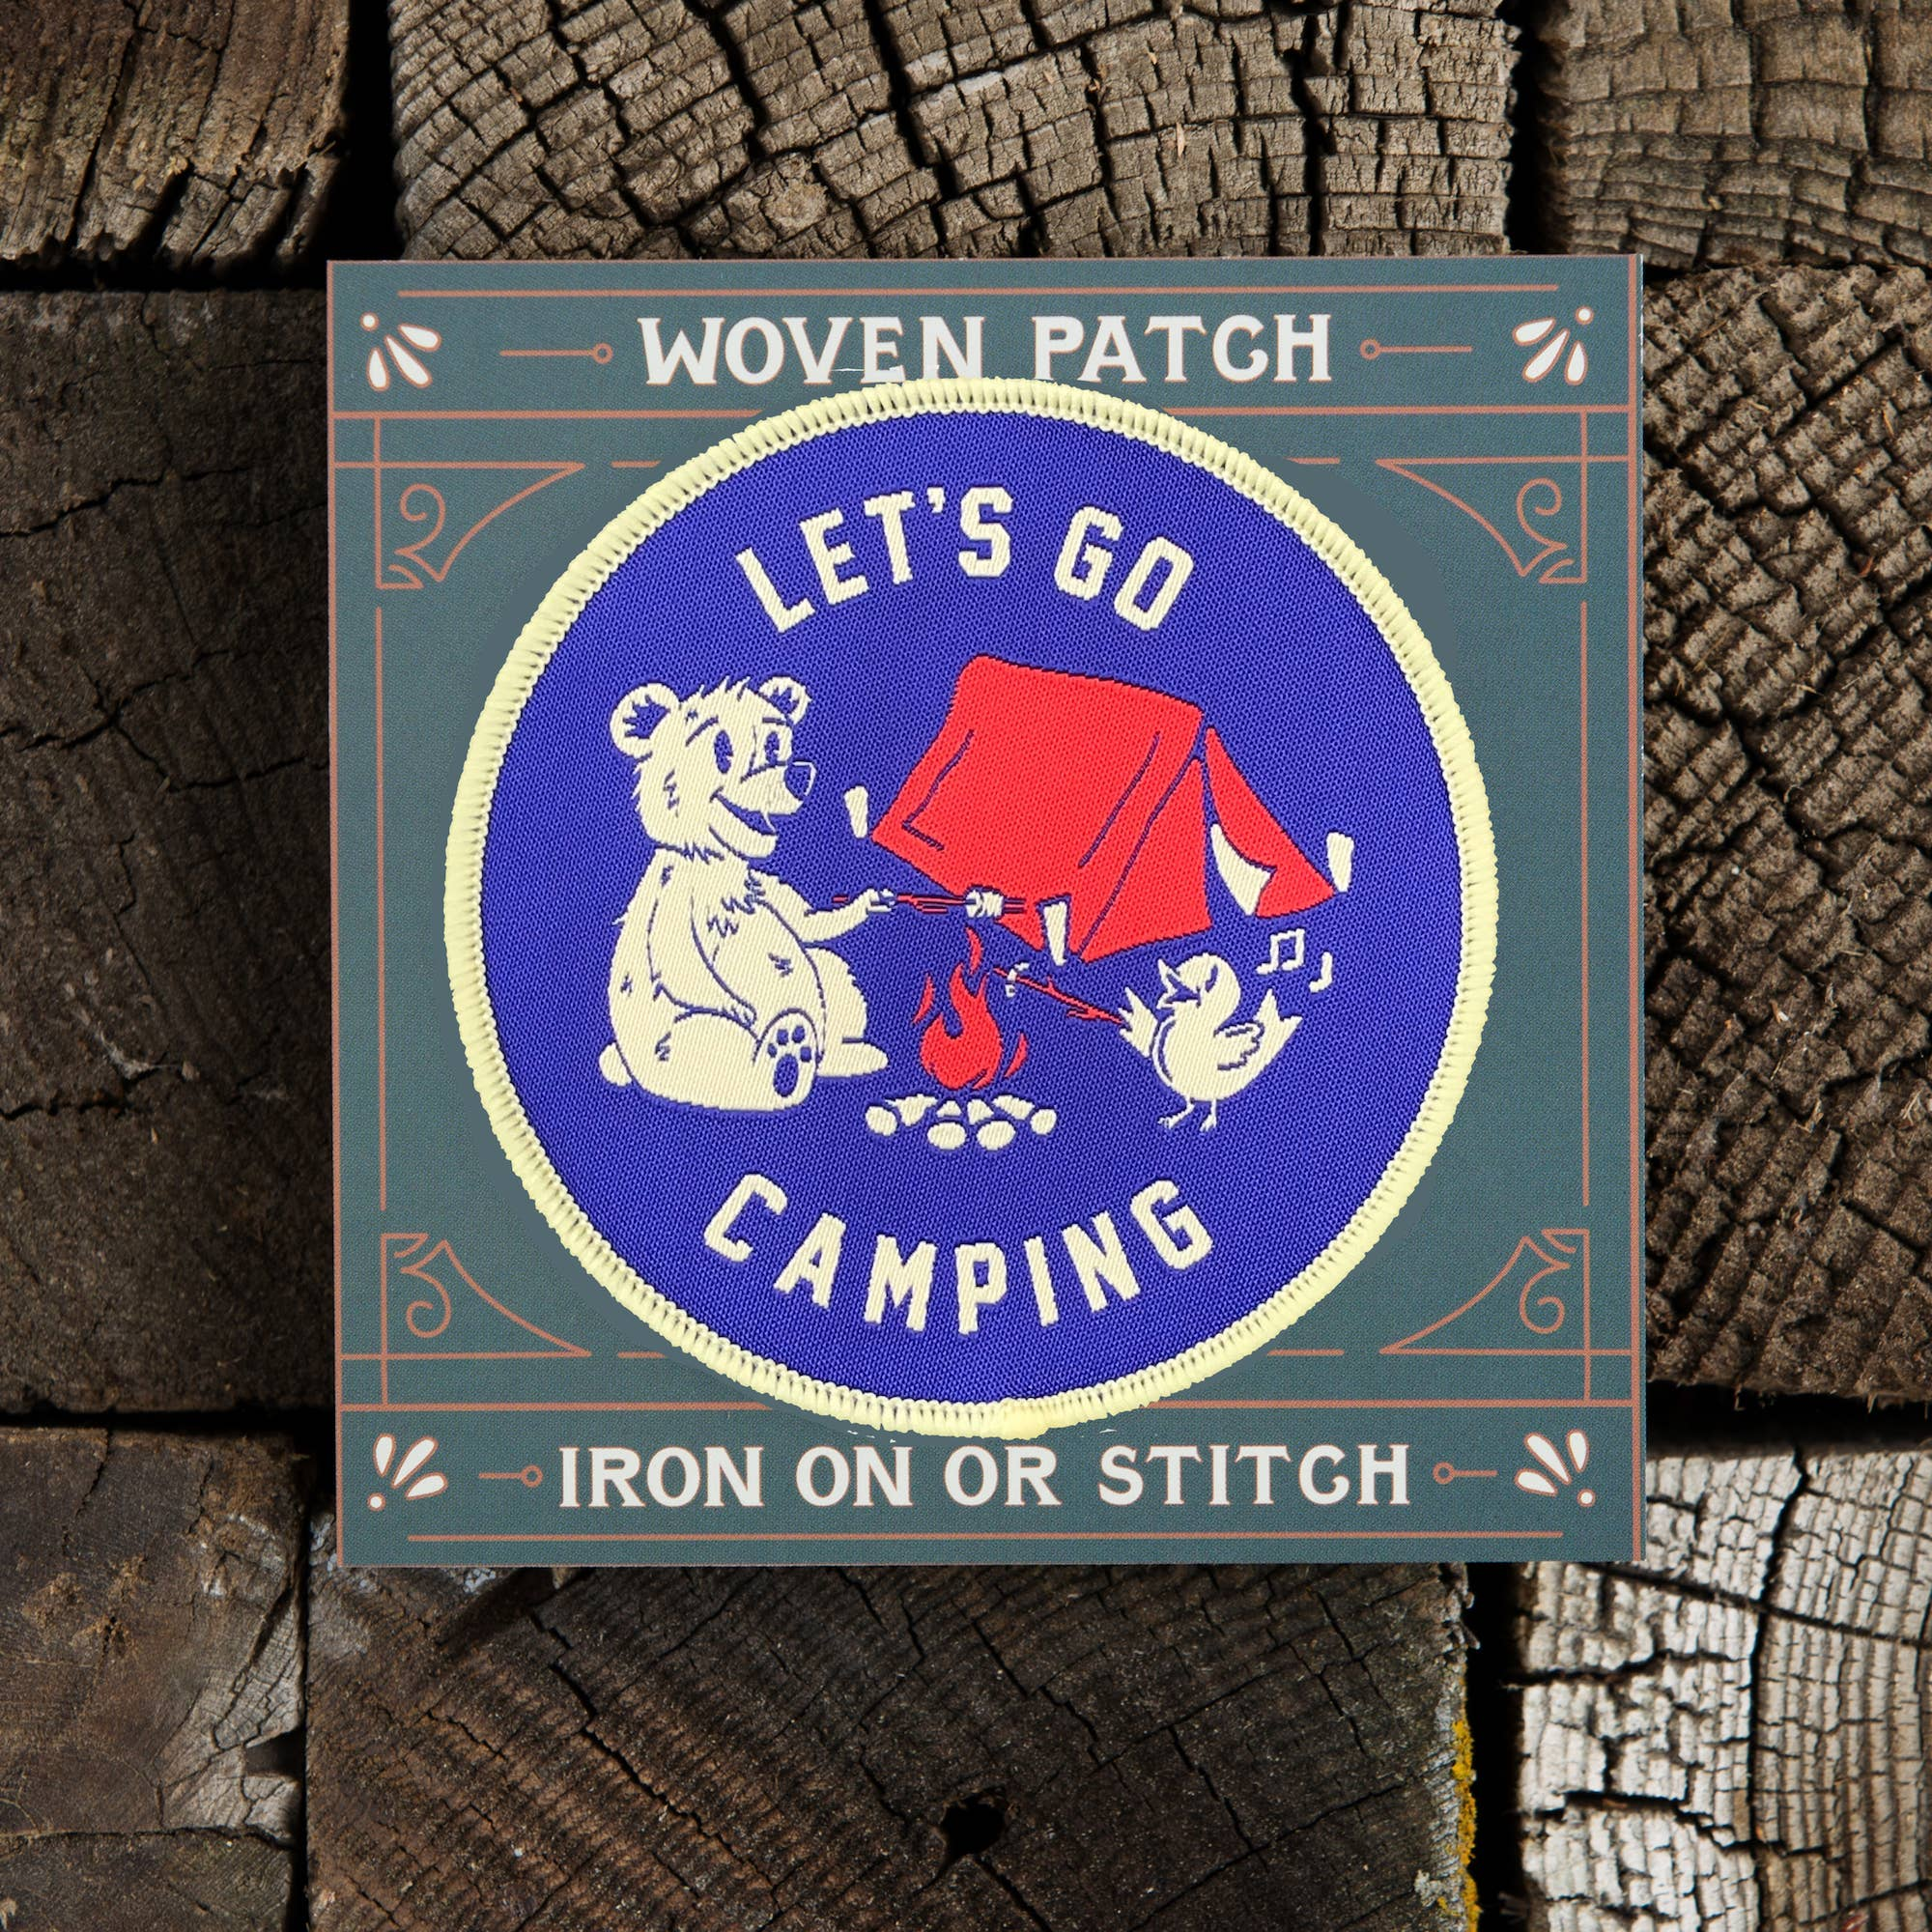 Let's Go Camping Patch - The Lake and Company